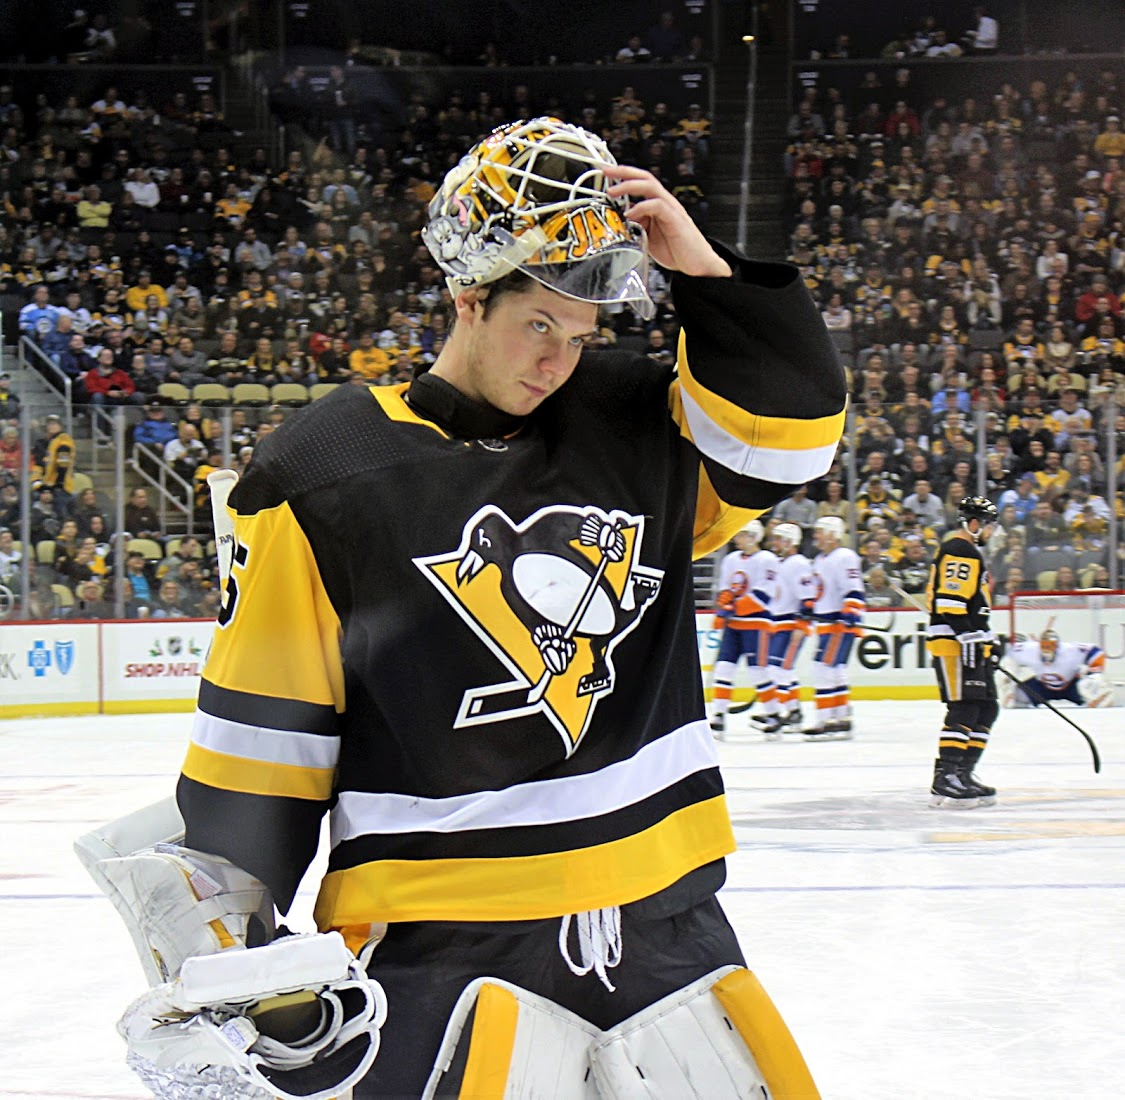 Jarry definition, french poet and playwright. Penguins Locker Room: Will Tristan Jarry Shoot for NHL ...